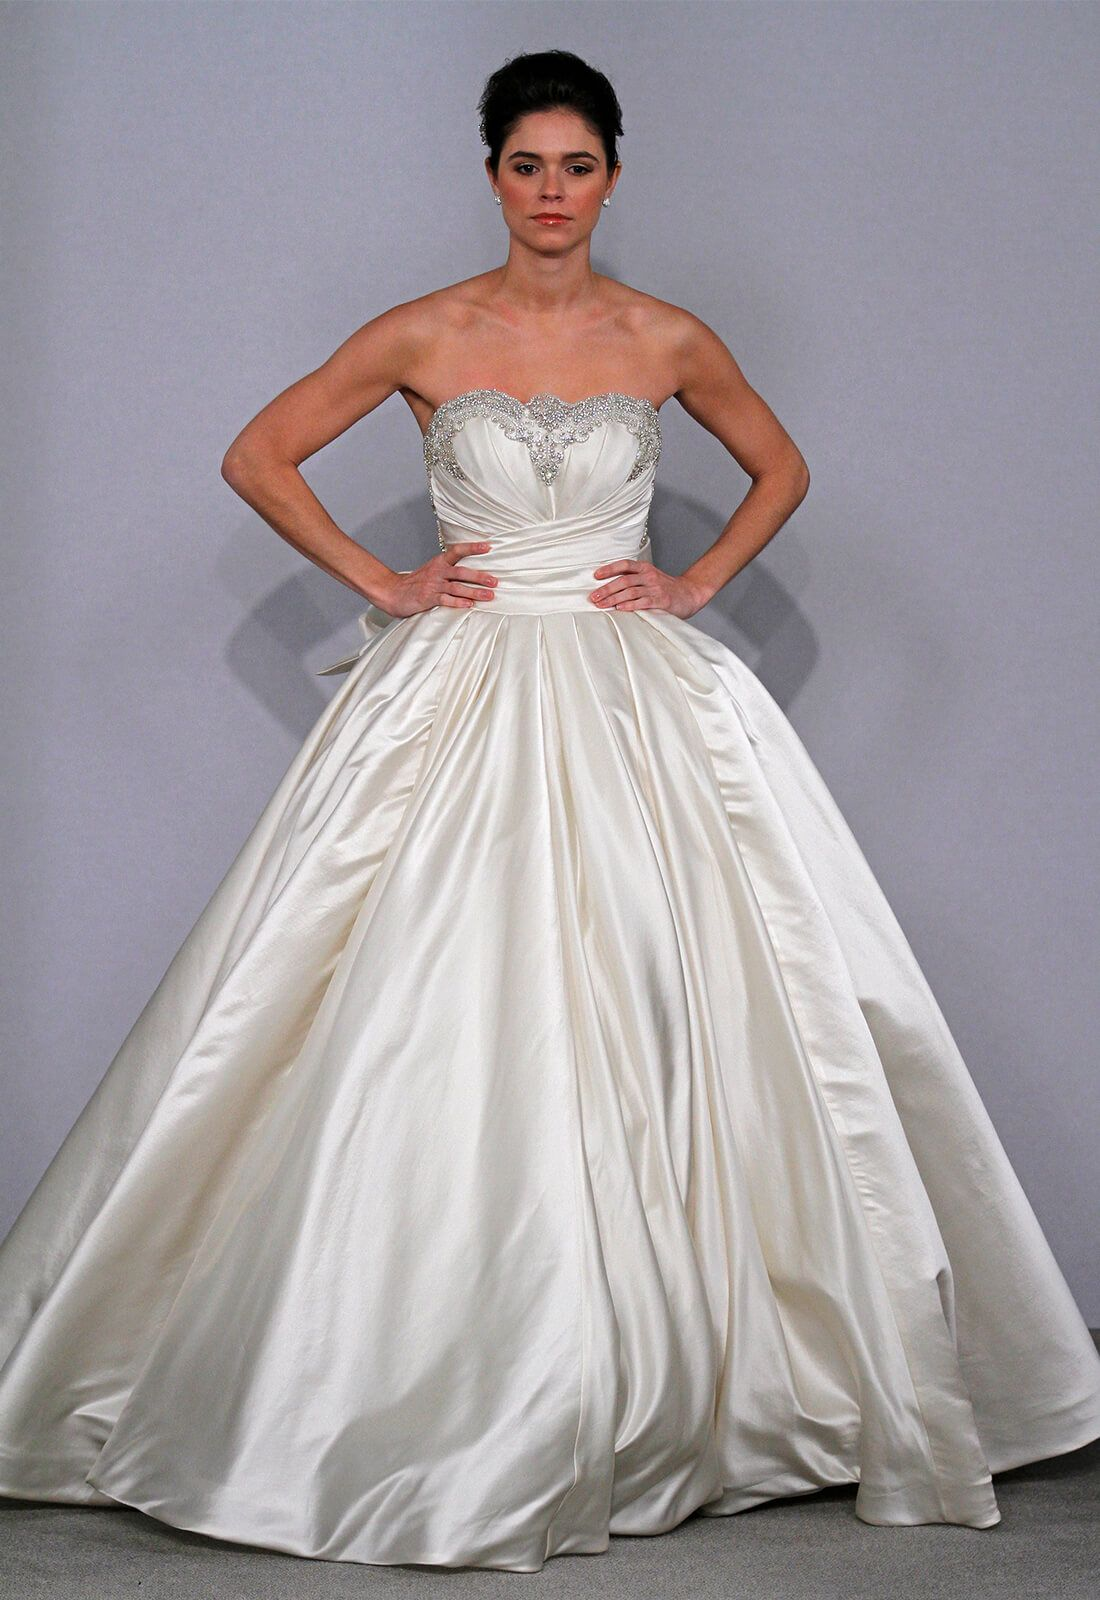 Wedding dresses asia  Pin by Asia McHaney on Wedding Inspiration  Pinterest  Pnina